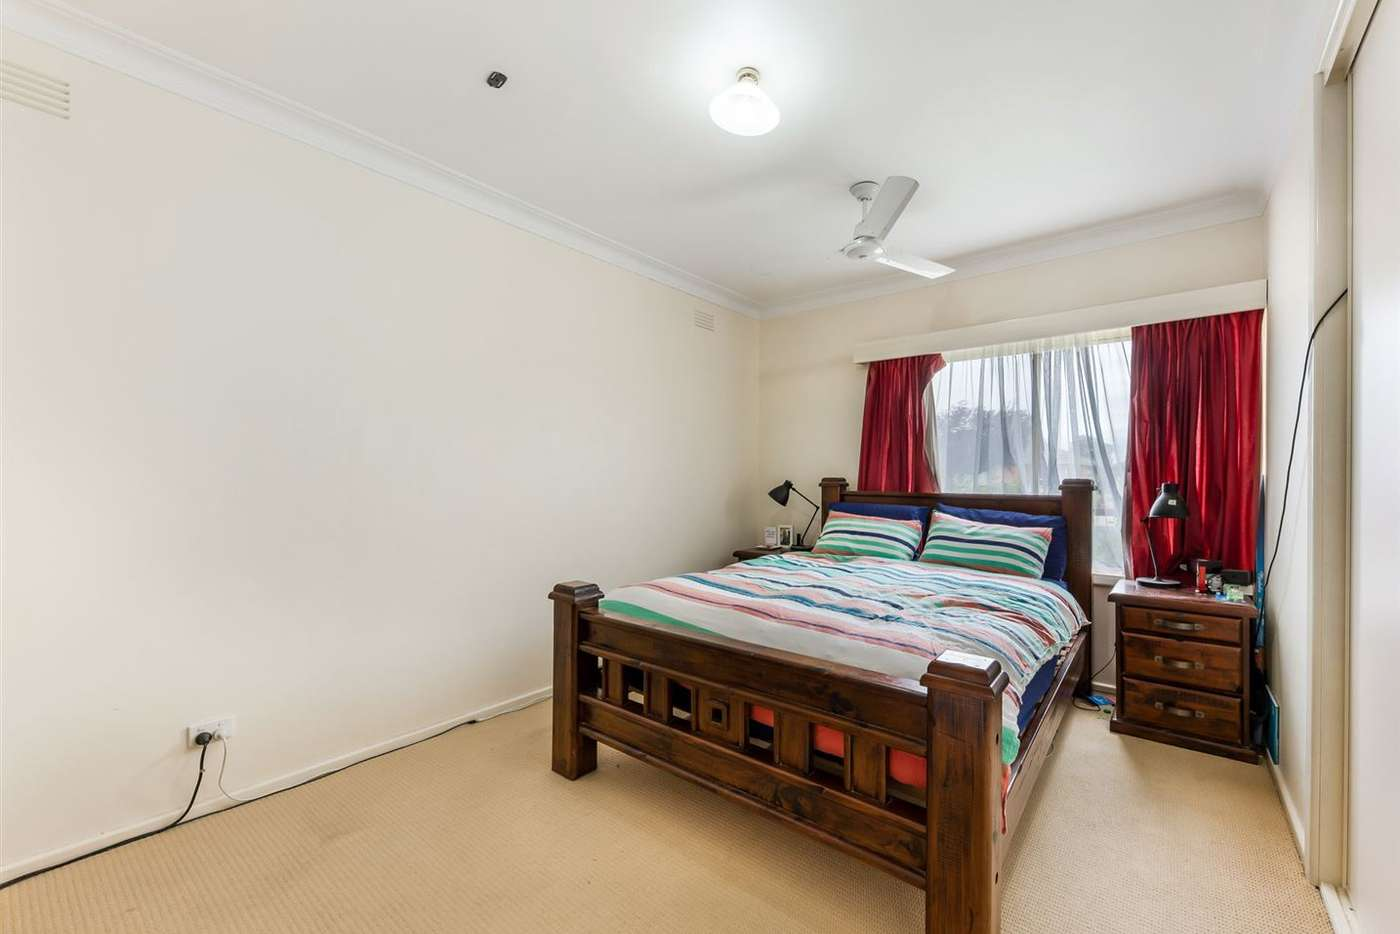 Fifth view of Homely house listing, 27 Brodie Street, Wangaratta VIC 3677